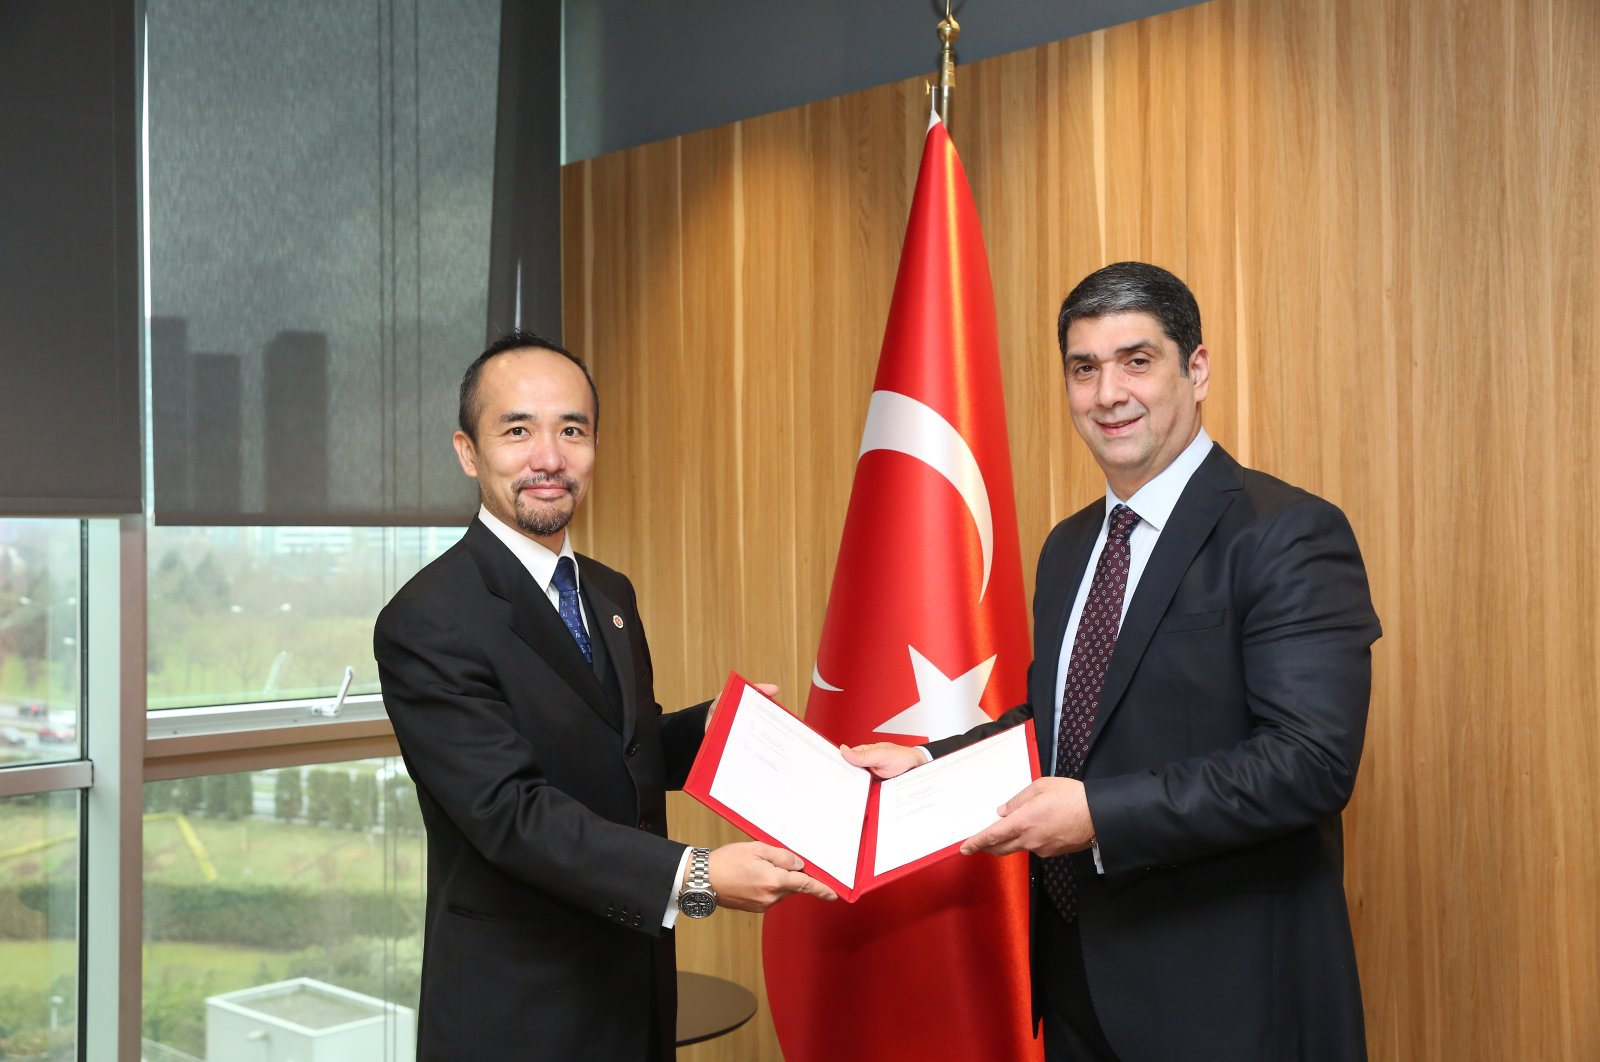 Turkey Development and Investment Bank (TKYB) General-Director Ibrahim Öztop (R) and Japan Bank for International Cooperation (JBIC) Istanbul Representative Ryuta Suzuki are seen in this photo provided on March 29, 2021. (Courtesy of TKYB)